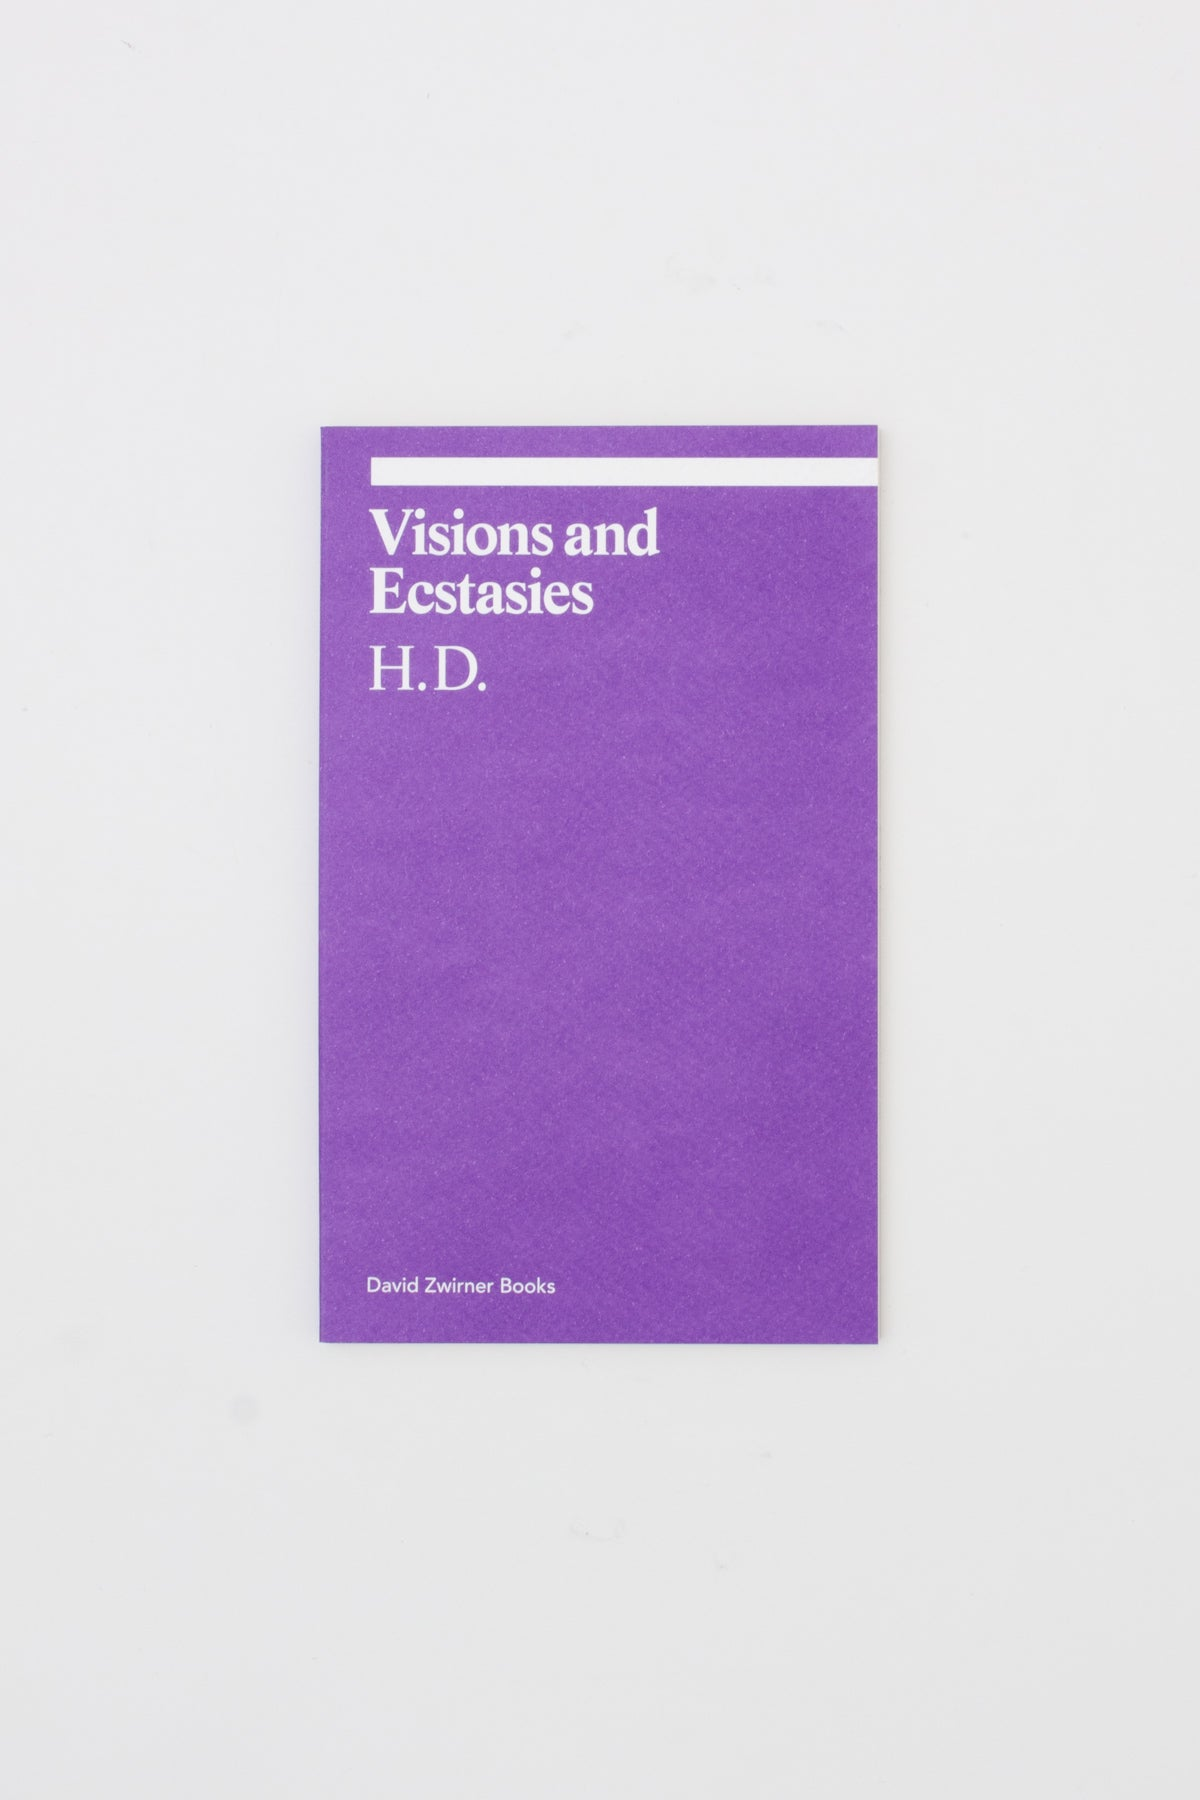 Visions and Ecstasies - H.D.